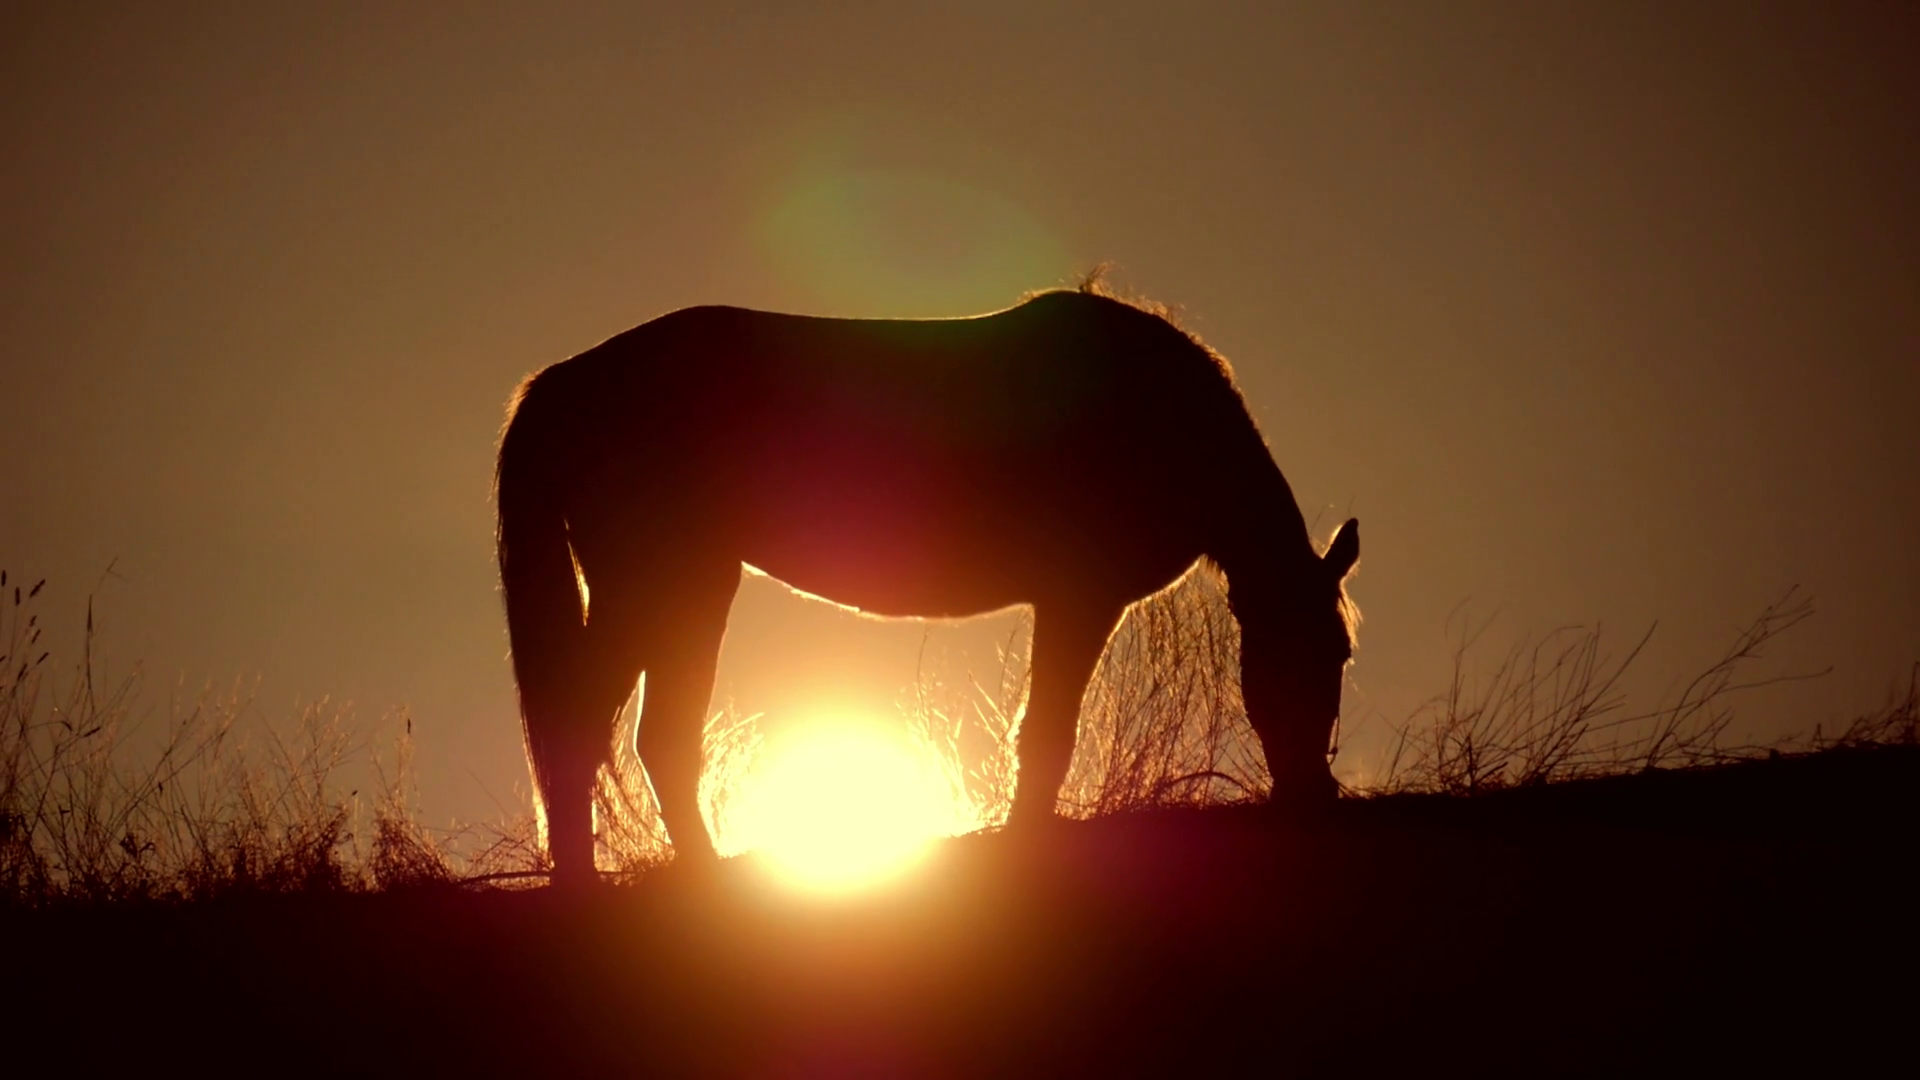 Beautiful Horse Silhouette On A Sunset Background Stock Video Footage Storyblocks